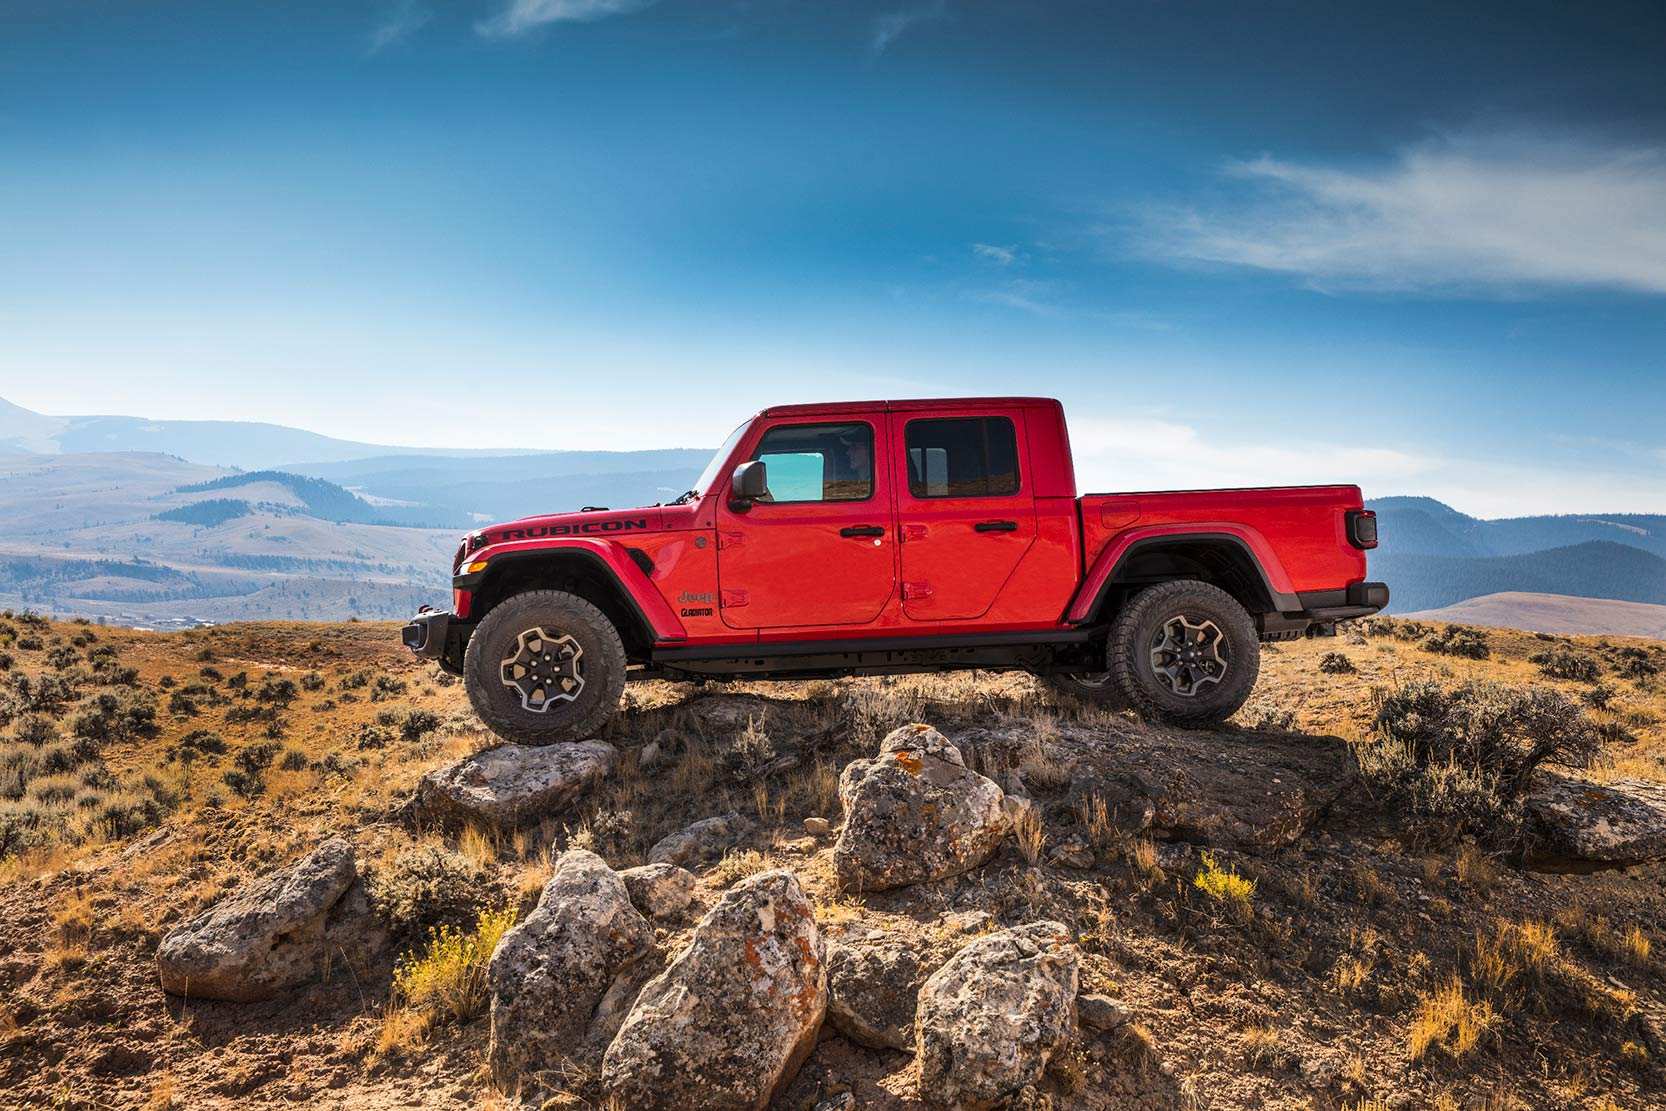 Exterieur_Jeep-Gladiator_23